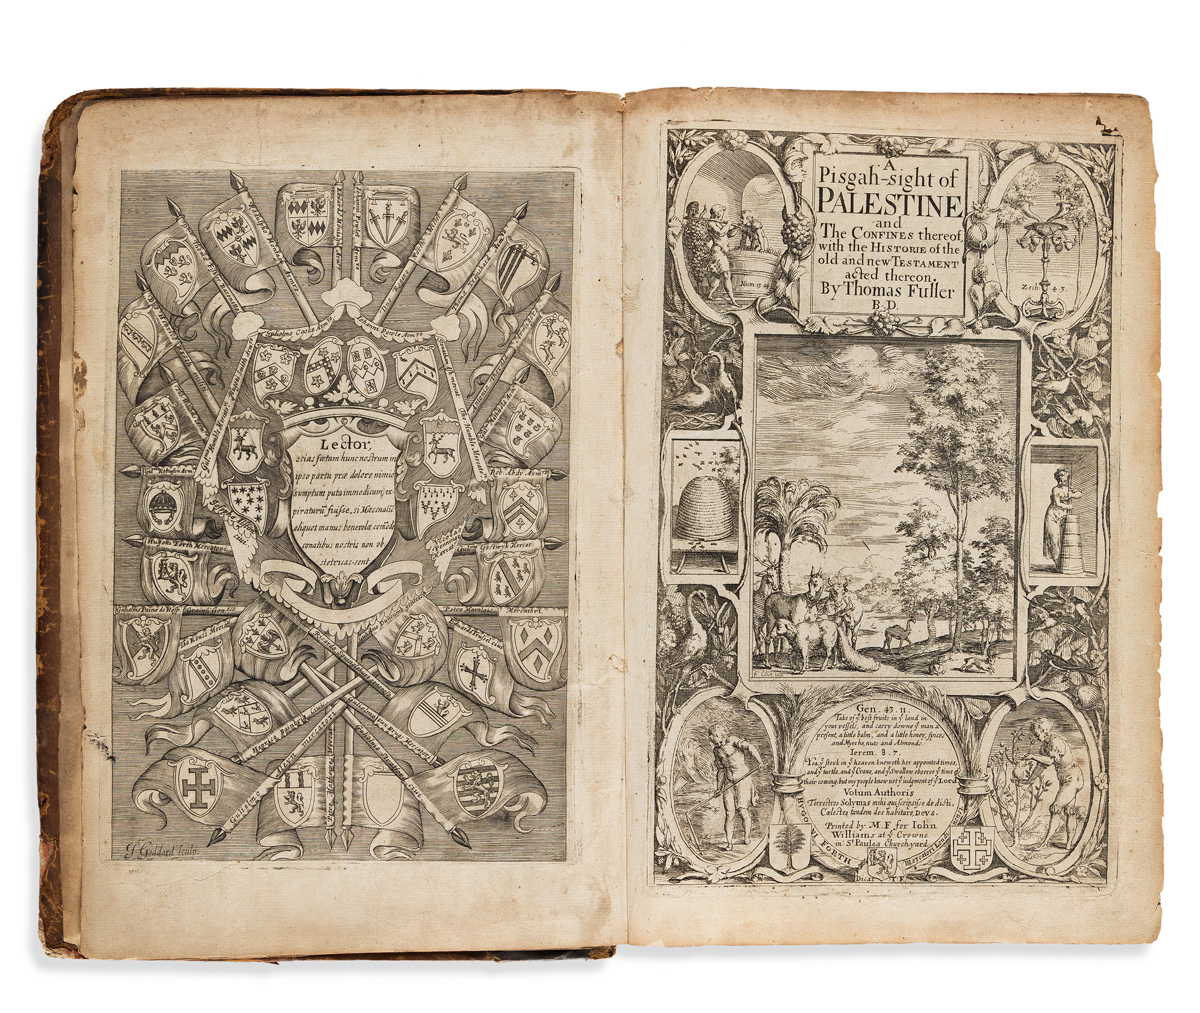 Fuller, Thomas (1608-1661) A Pisgah-Sight of Palestine and the Confines thereof, with the History of the Old and New Testament.